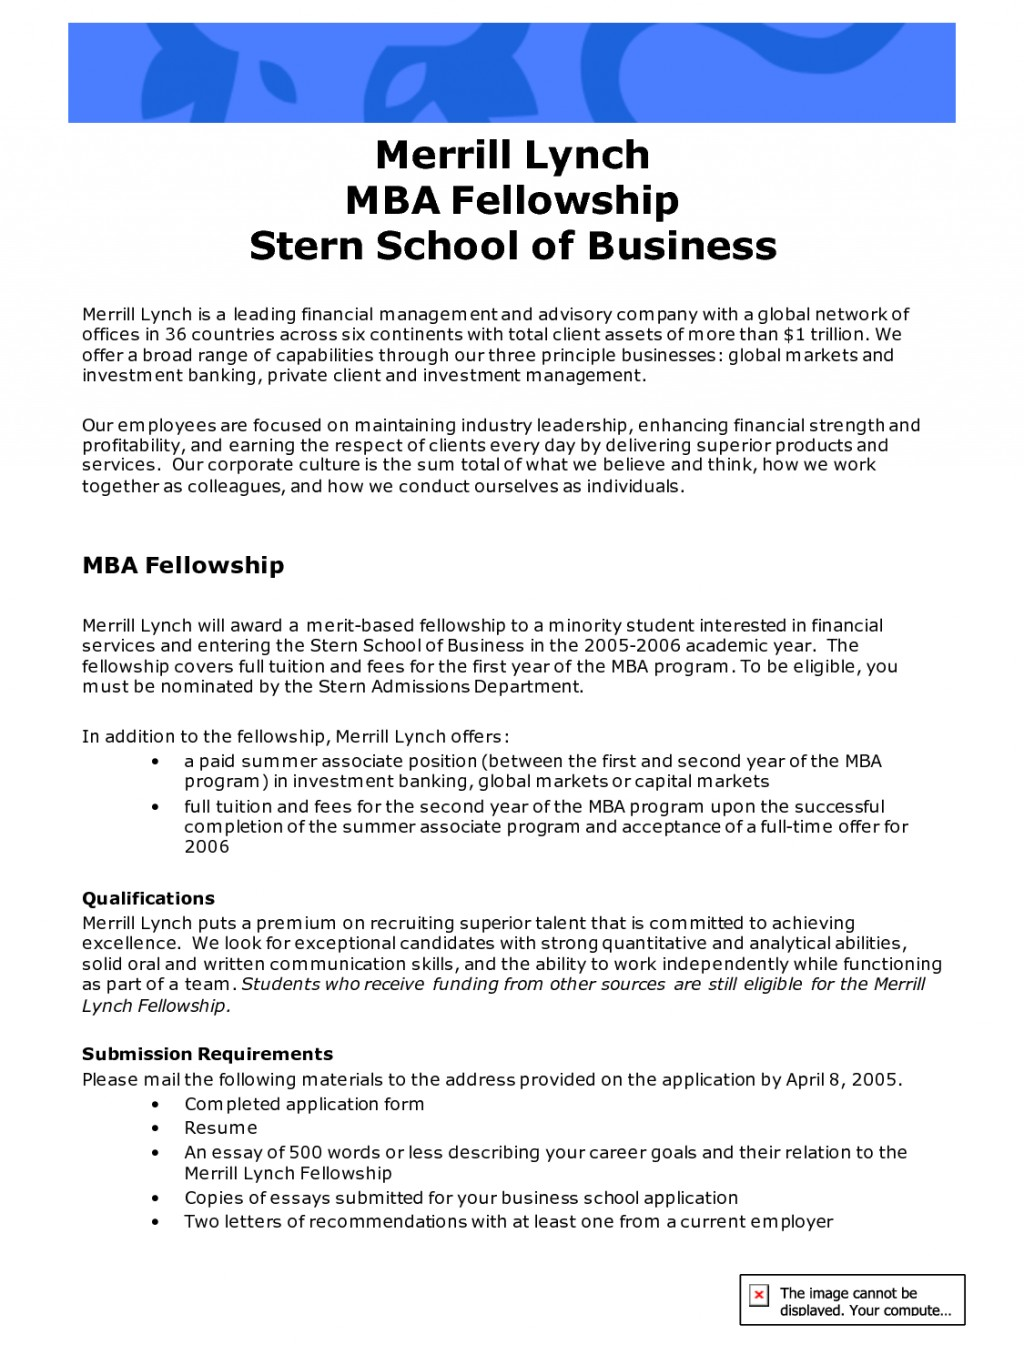 023 Mba Goals Essay Goal Blockety Co Career Sample Objective Essays L Awesome Graduate School Future For College High Large